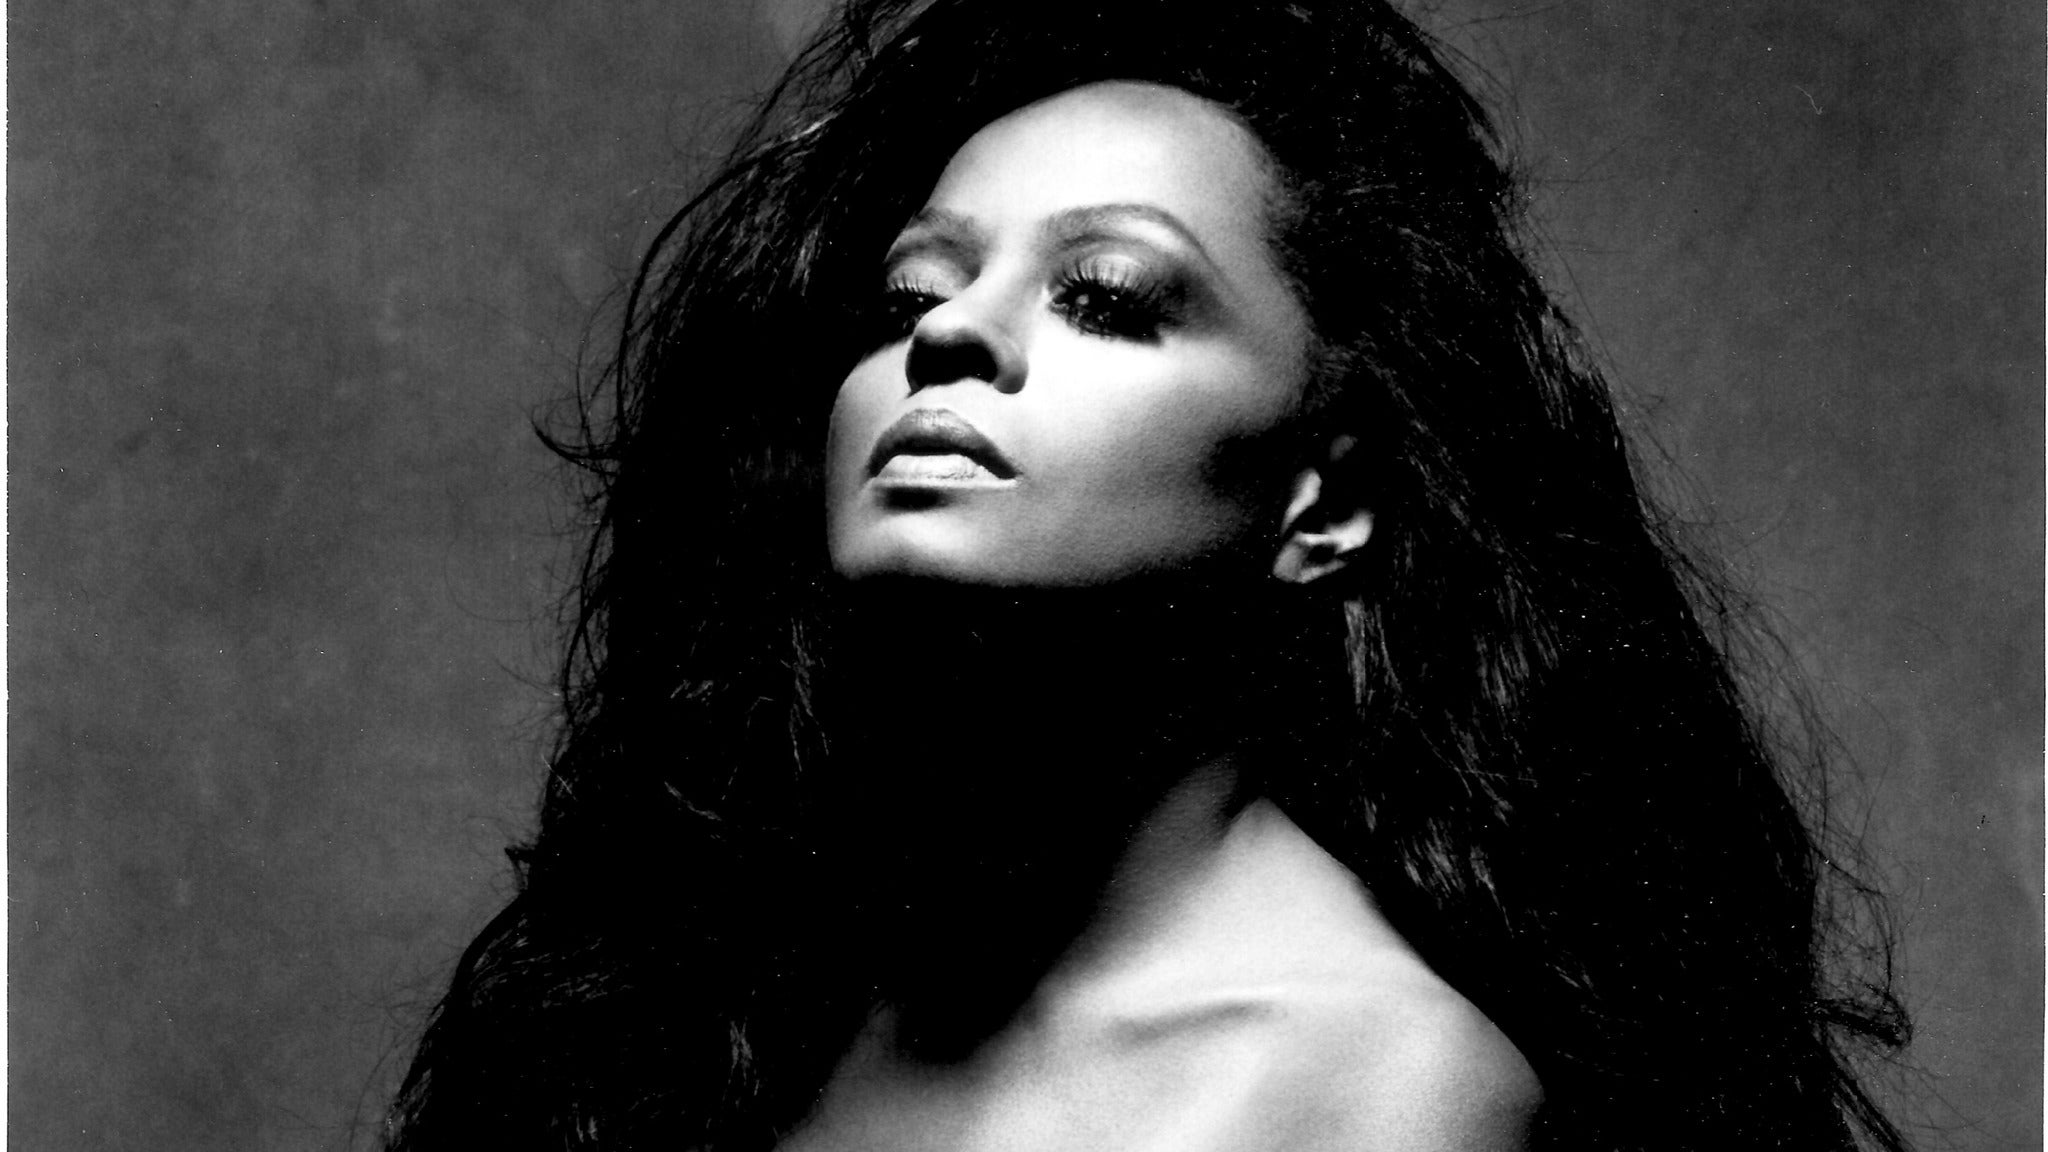 Diana Ross at The Grand Theater at Foxwoods Resort Casino